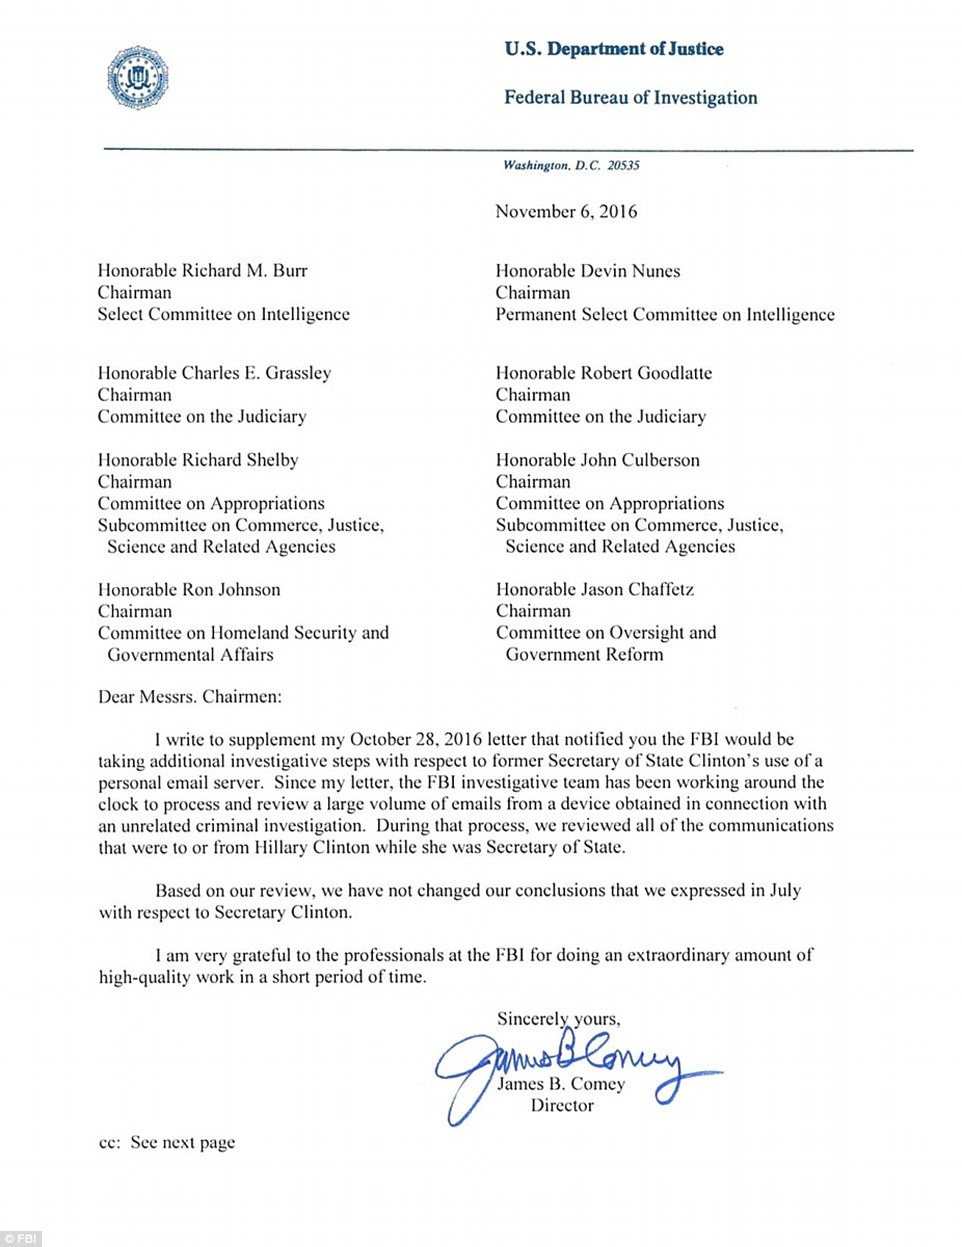 Comey sent this letter announcing the FBI's finding after examining the newly-discovered emails on Sunday afternoon